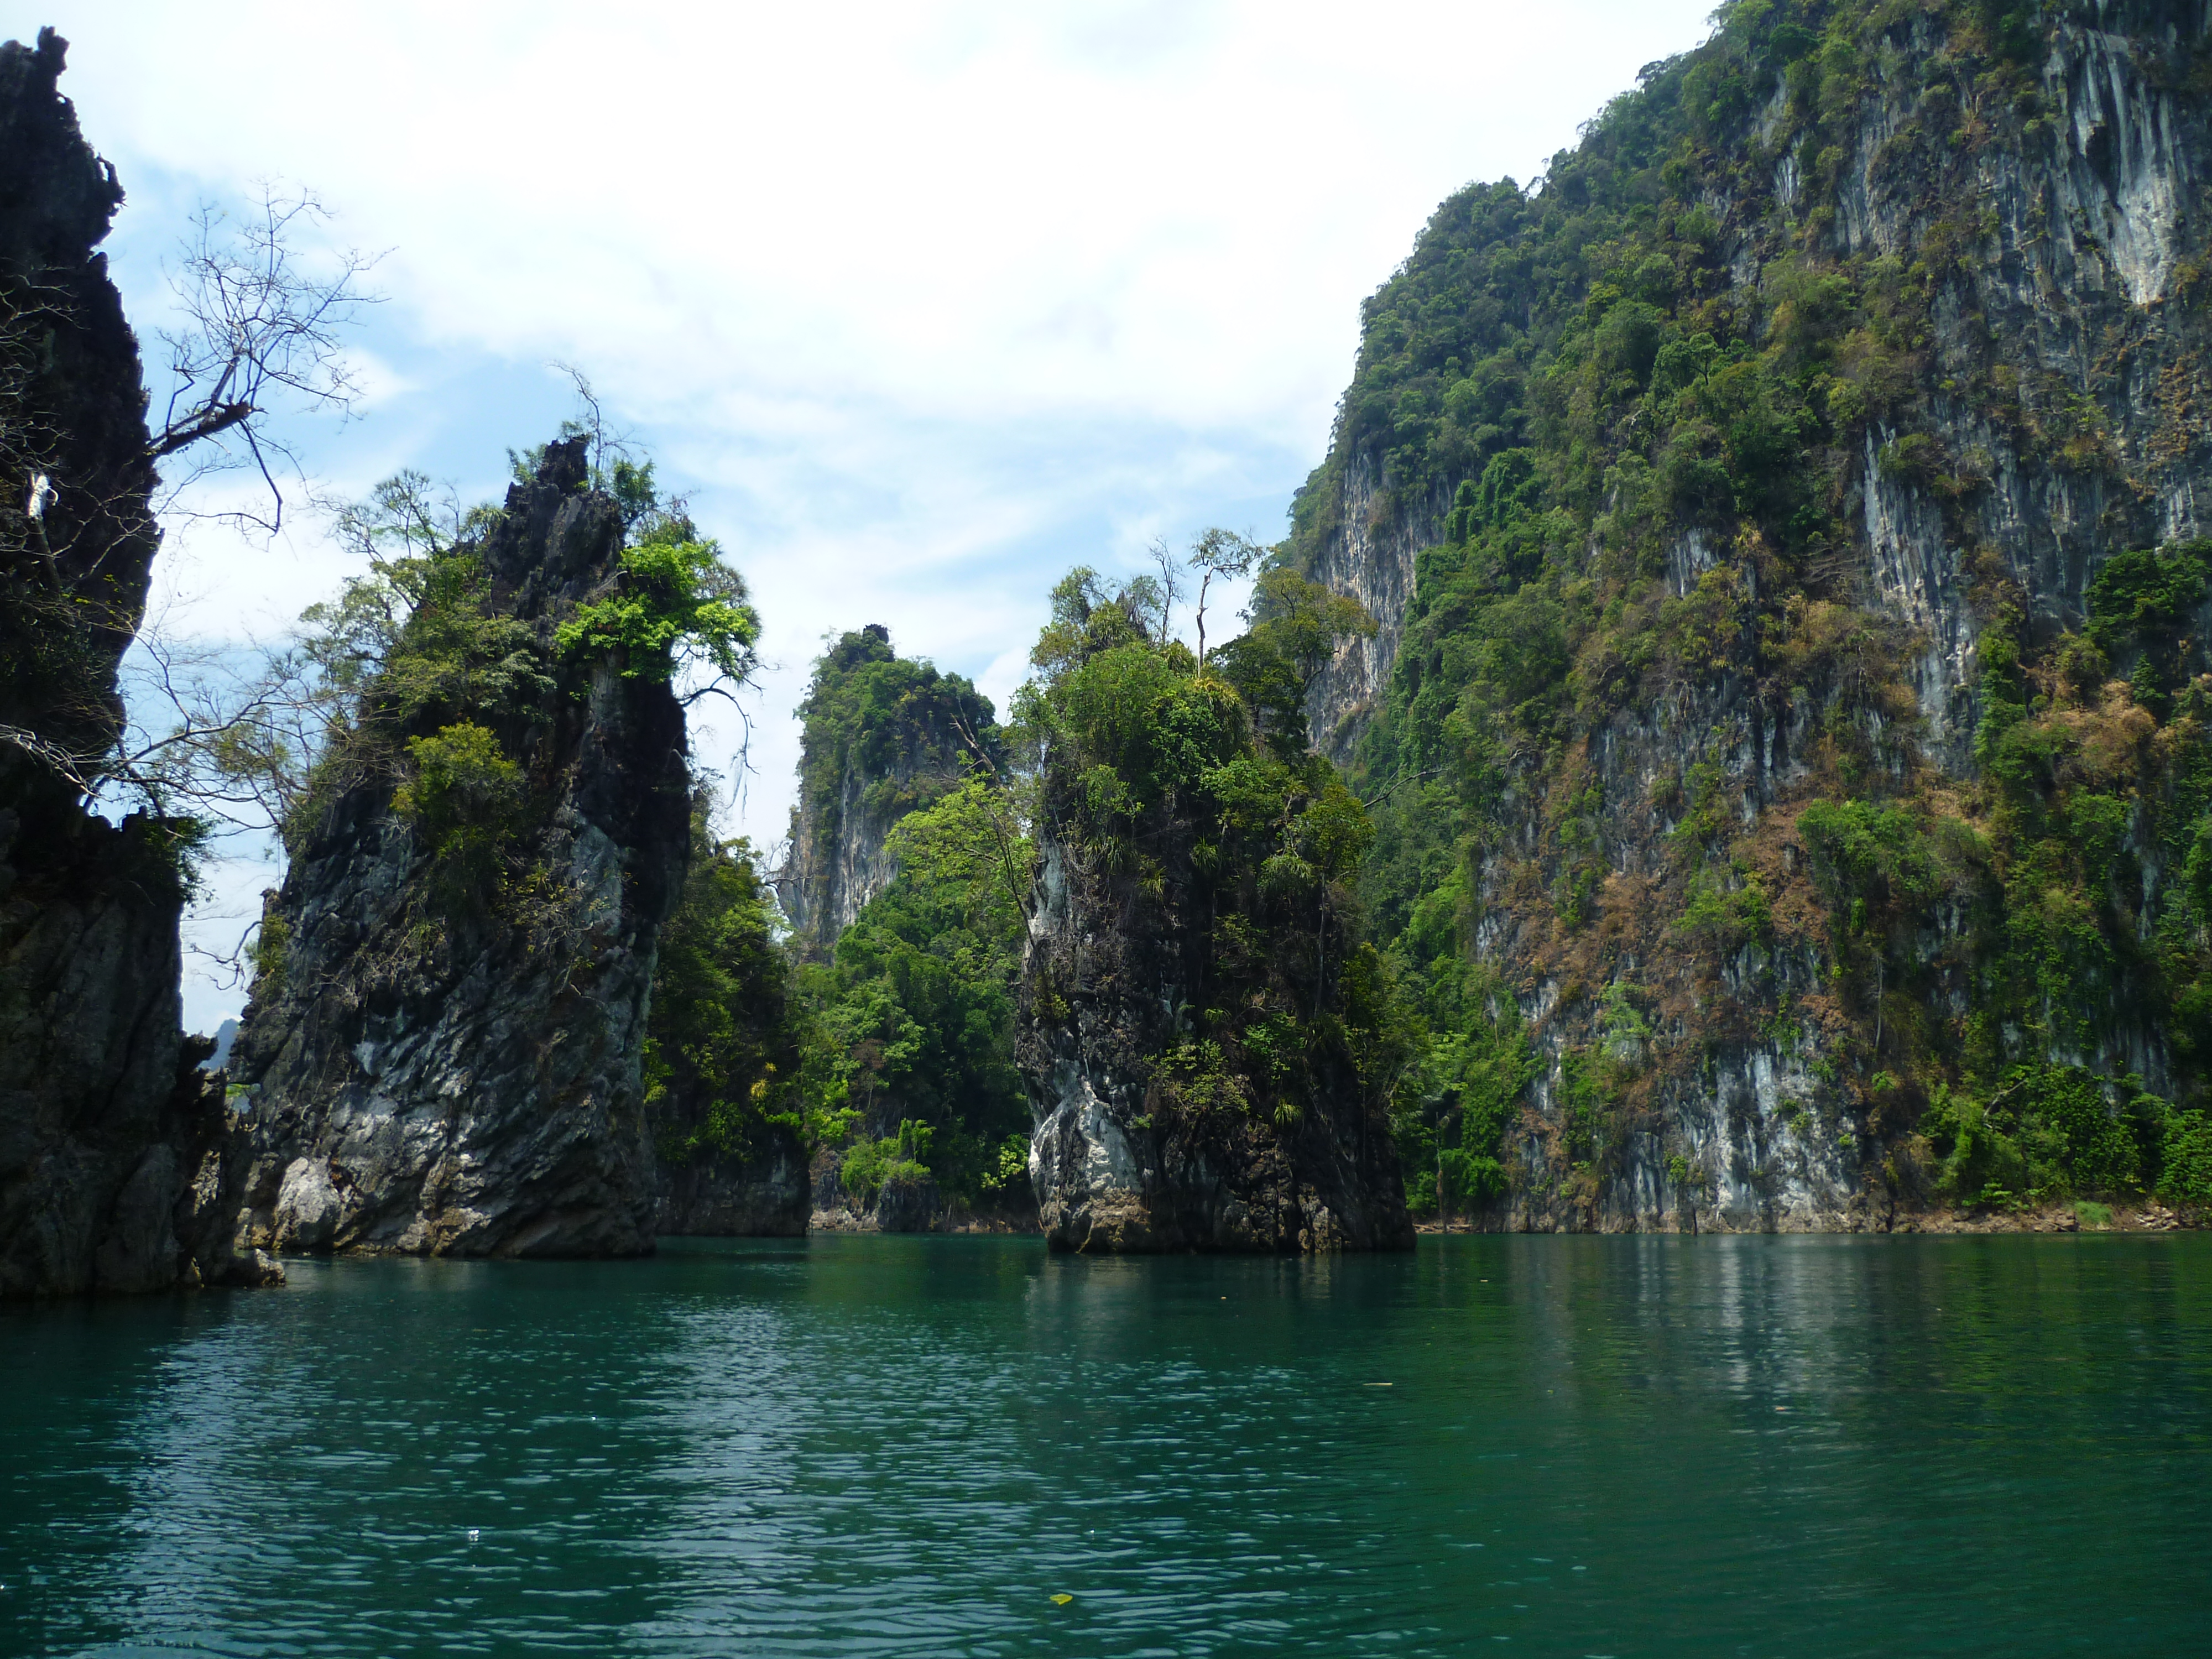 The Most Beautiful Thai Jungles